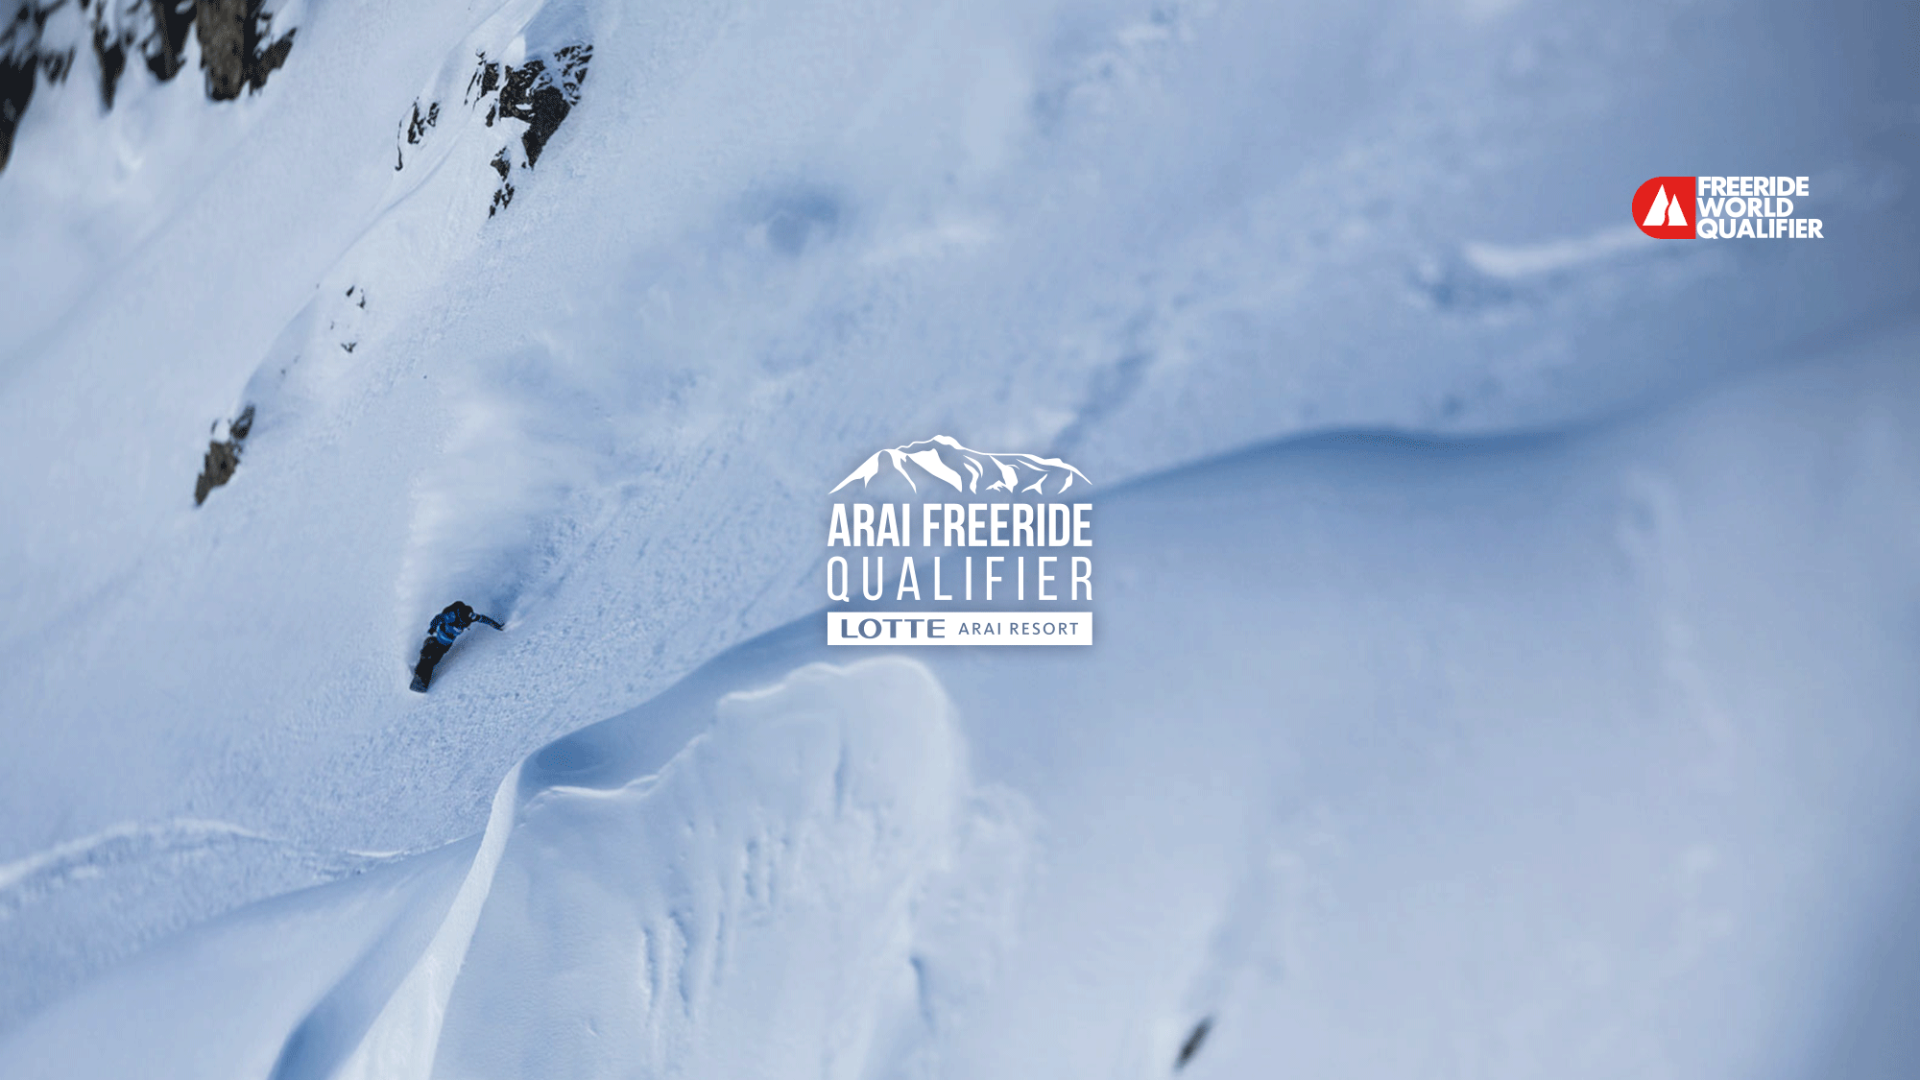 Arai Freeride Qualifier